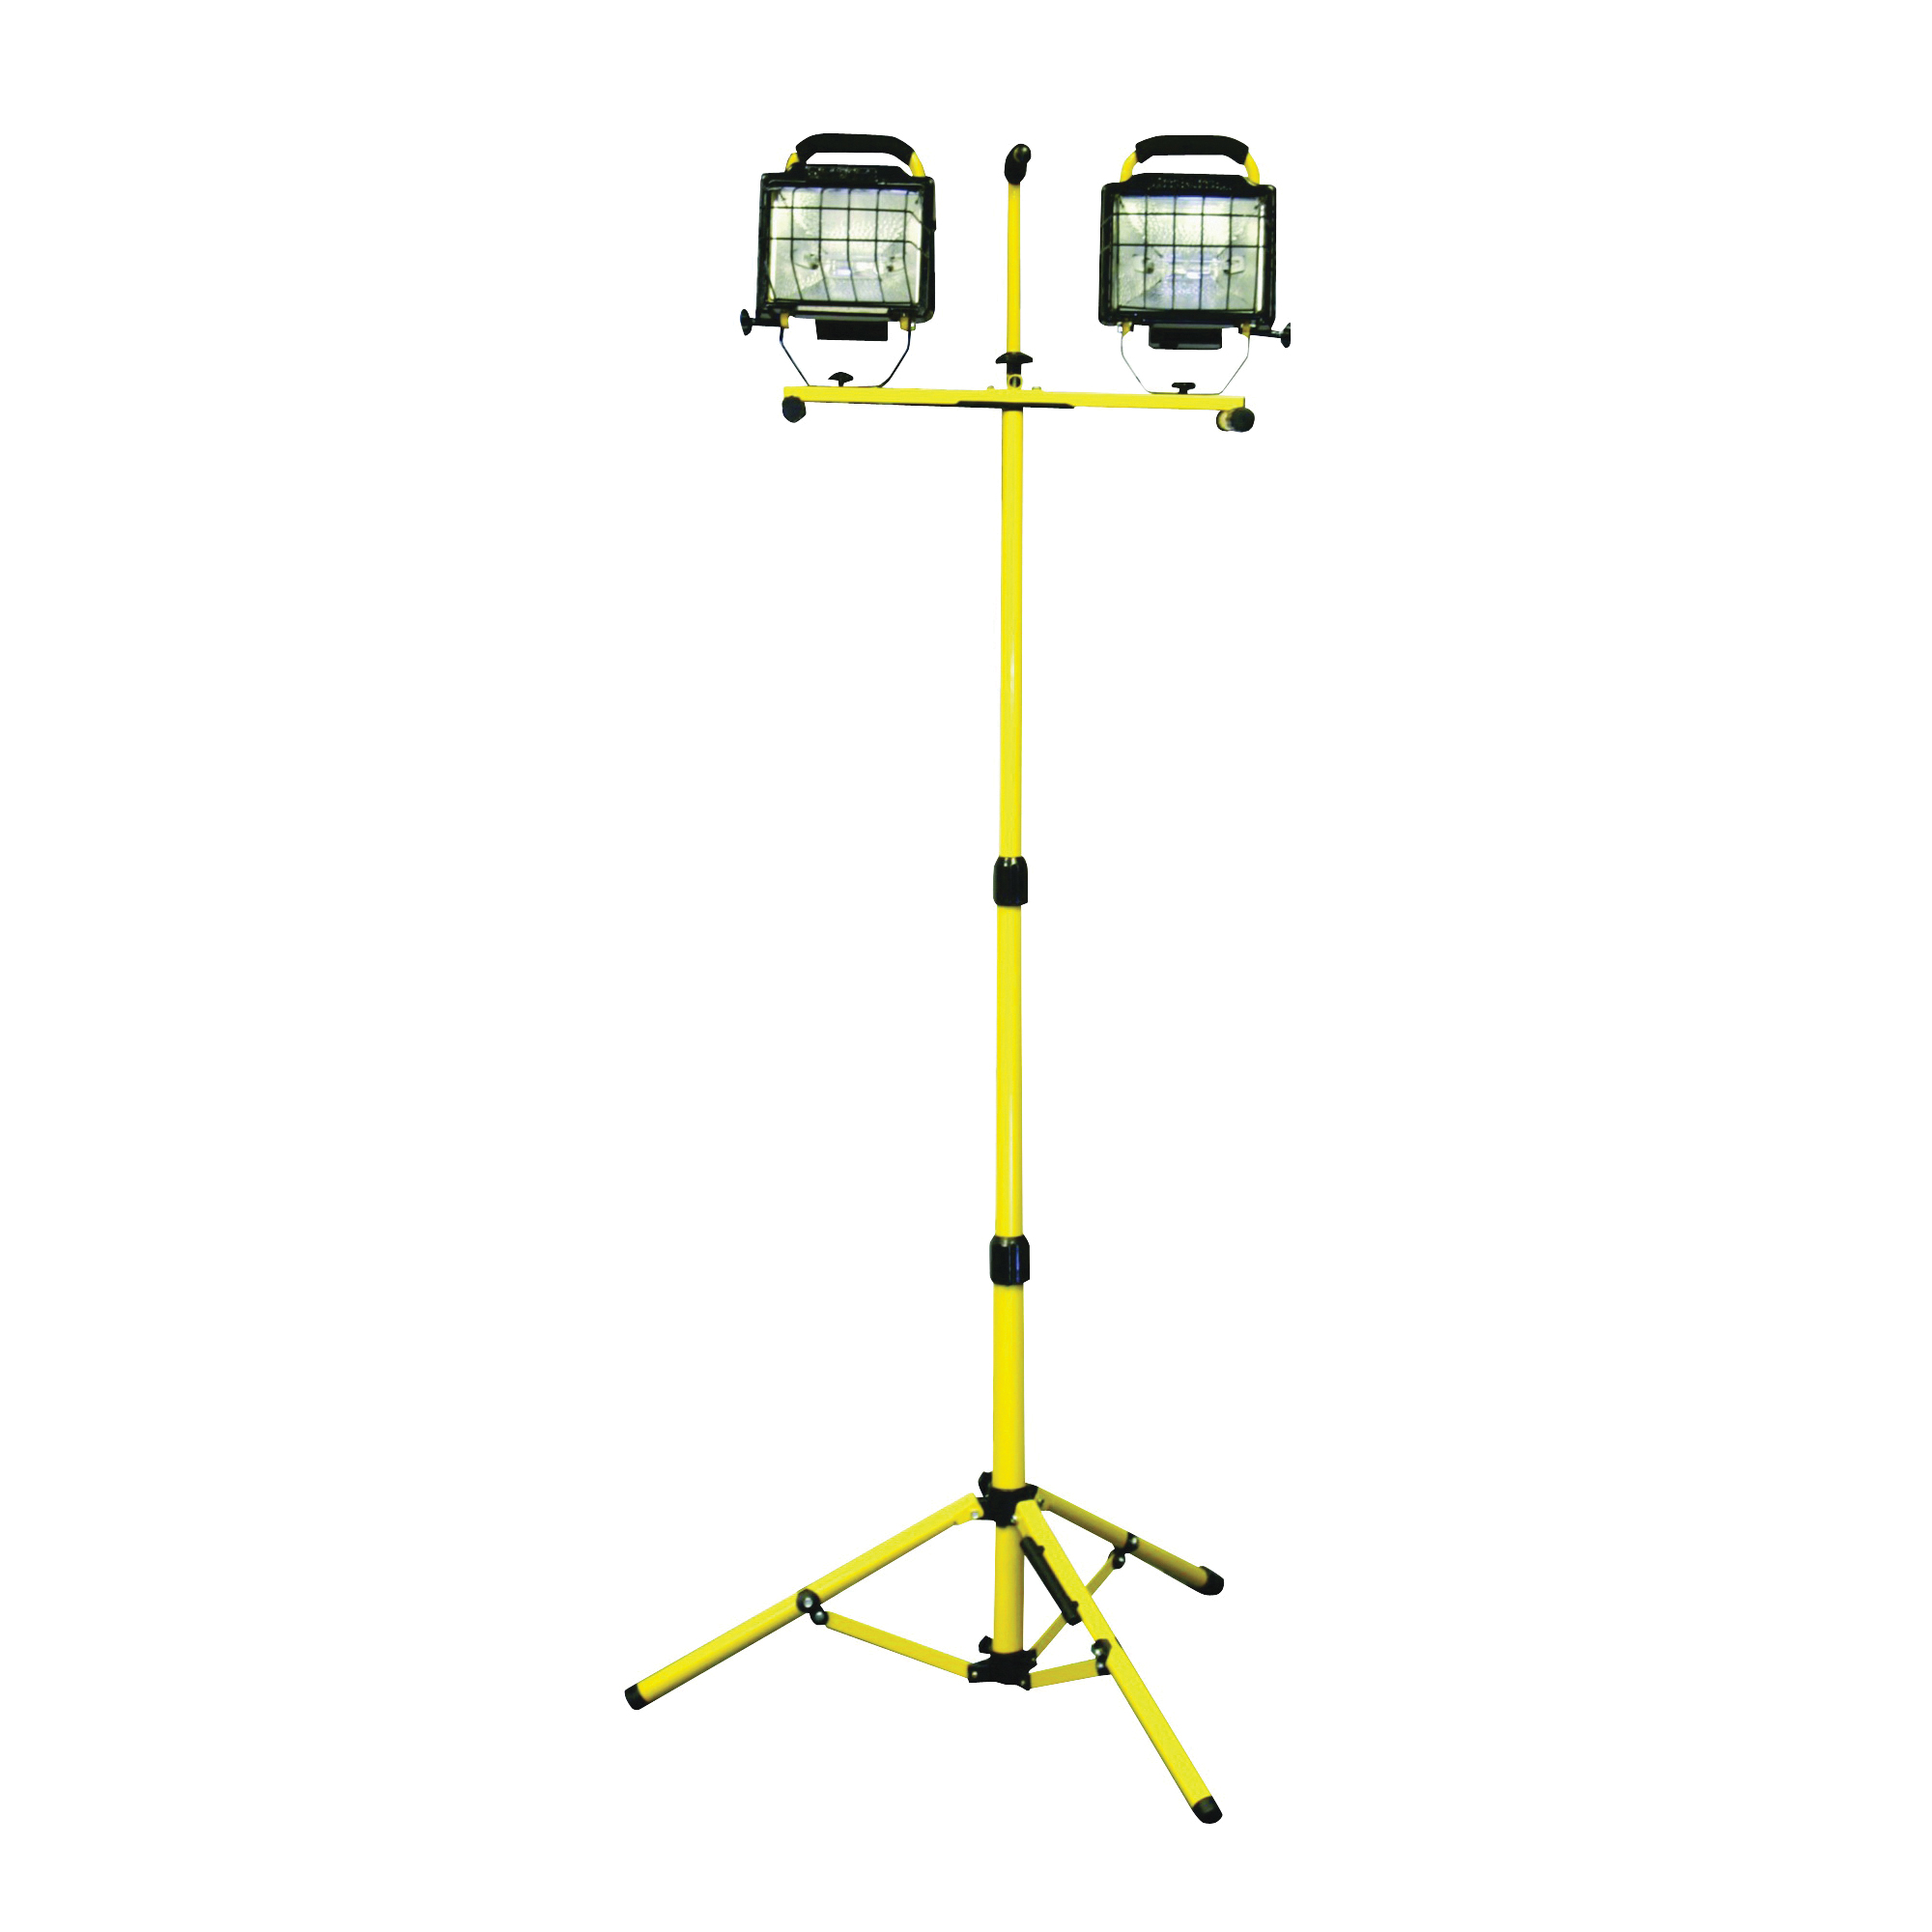 Picture of PowerZone ORHLT500X2 Work Light, 120 V, 1 W, 2-Lamp, Halogen Lamp, Yellow